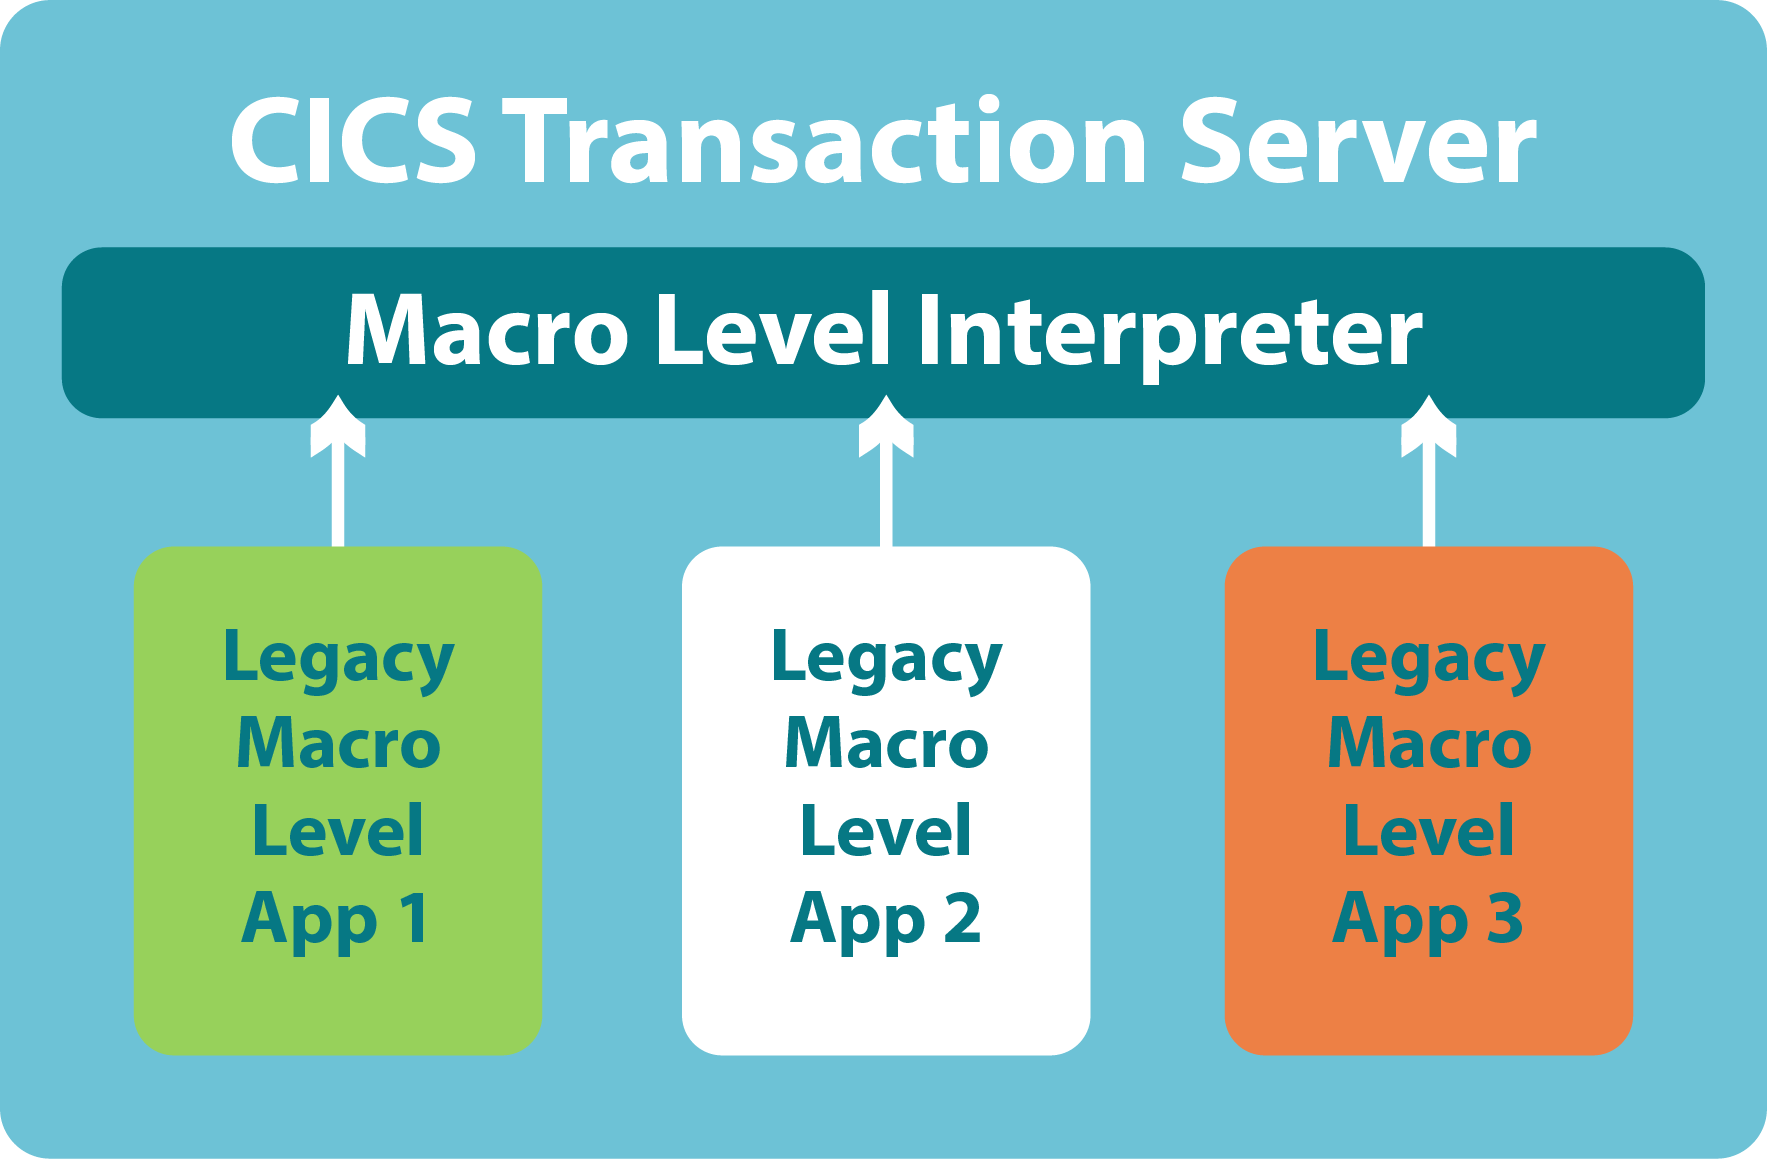 Macro Level Interpreter